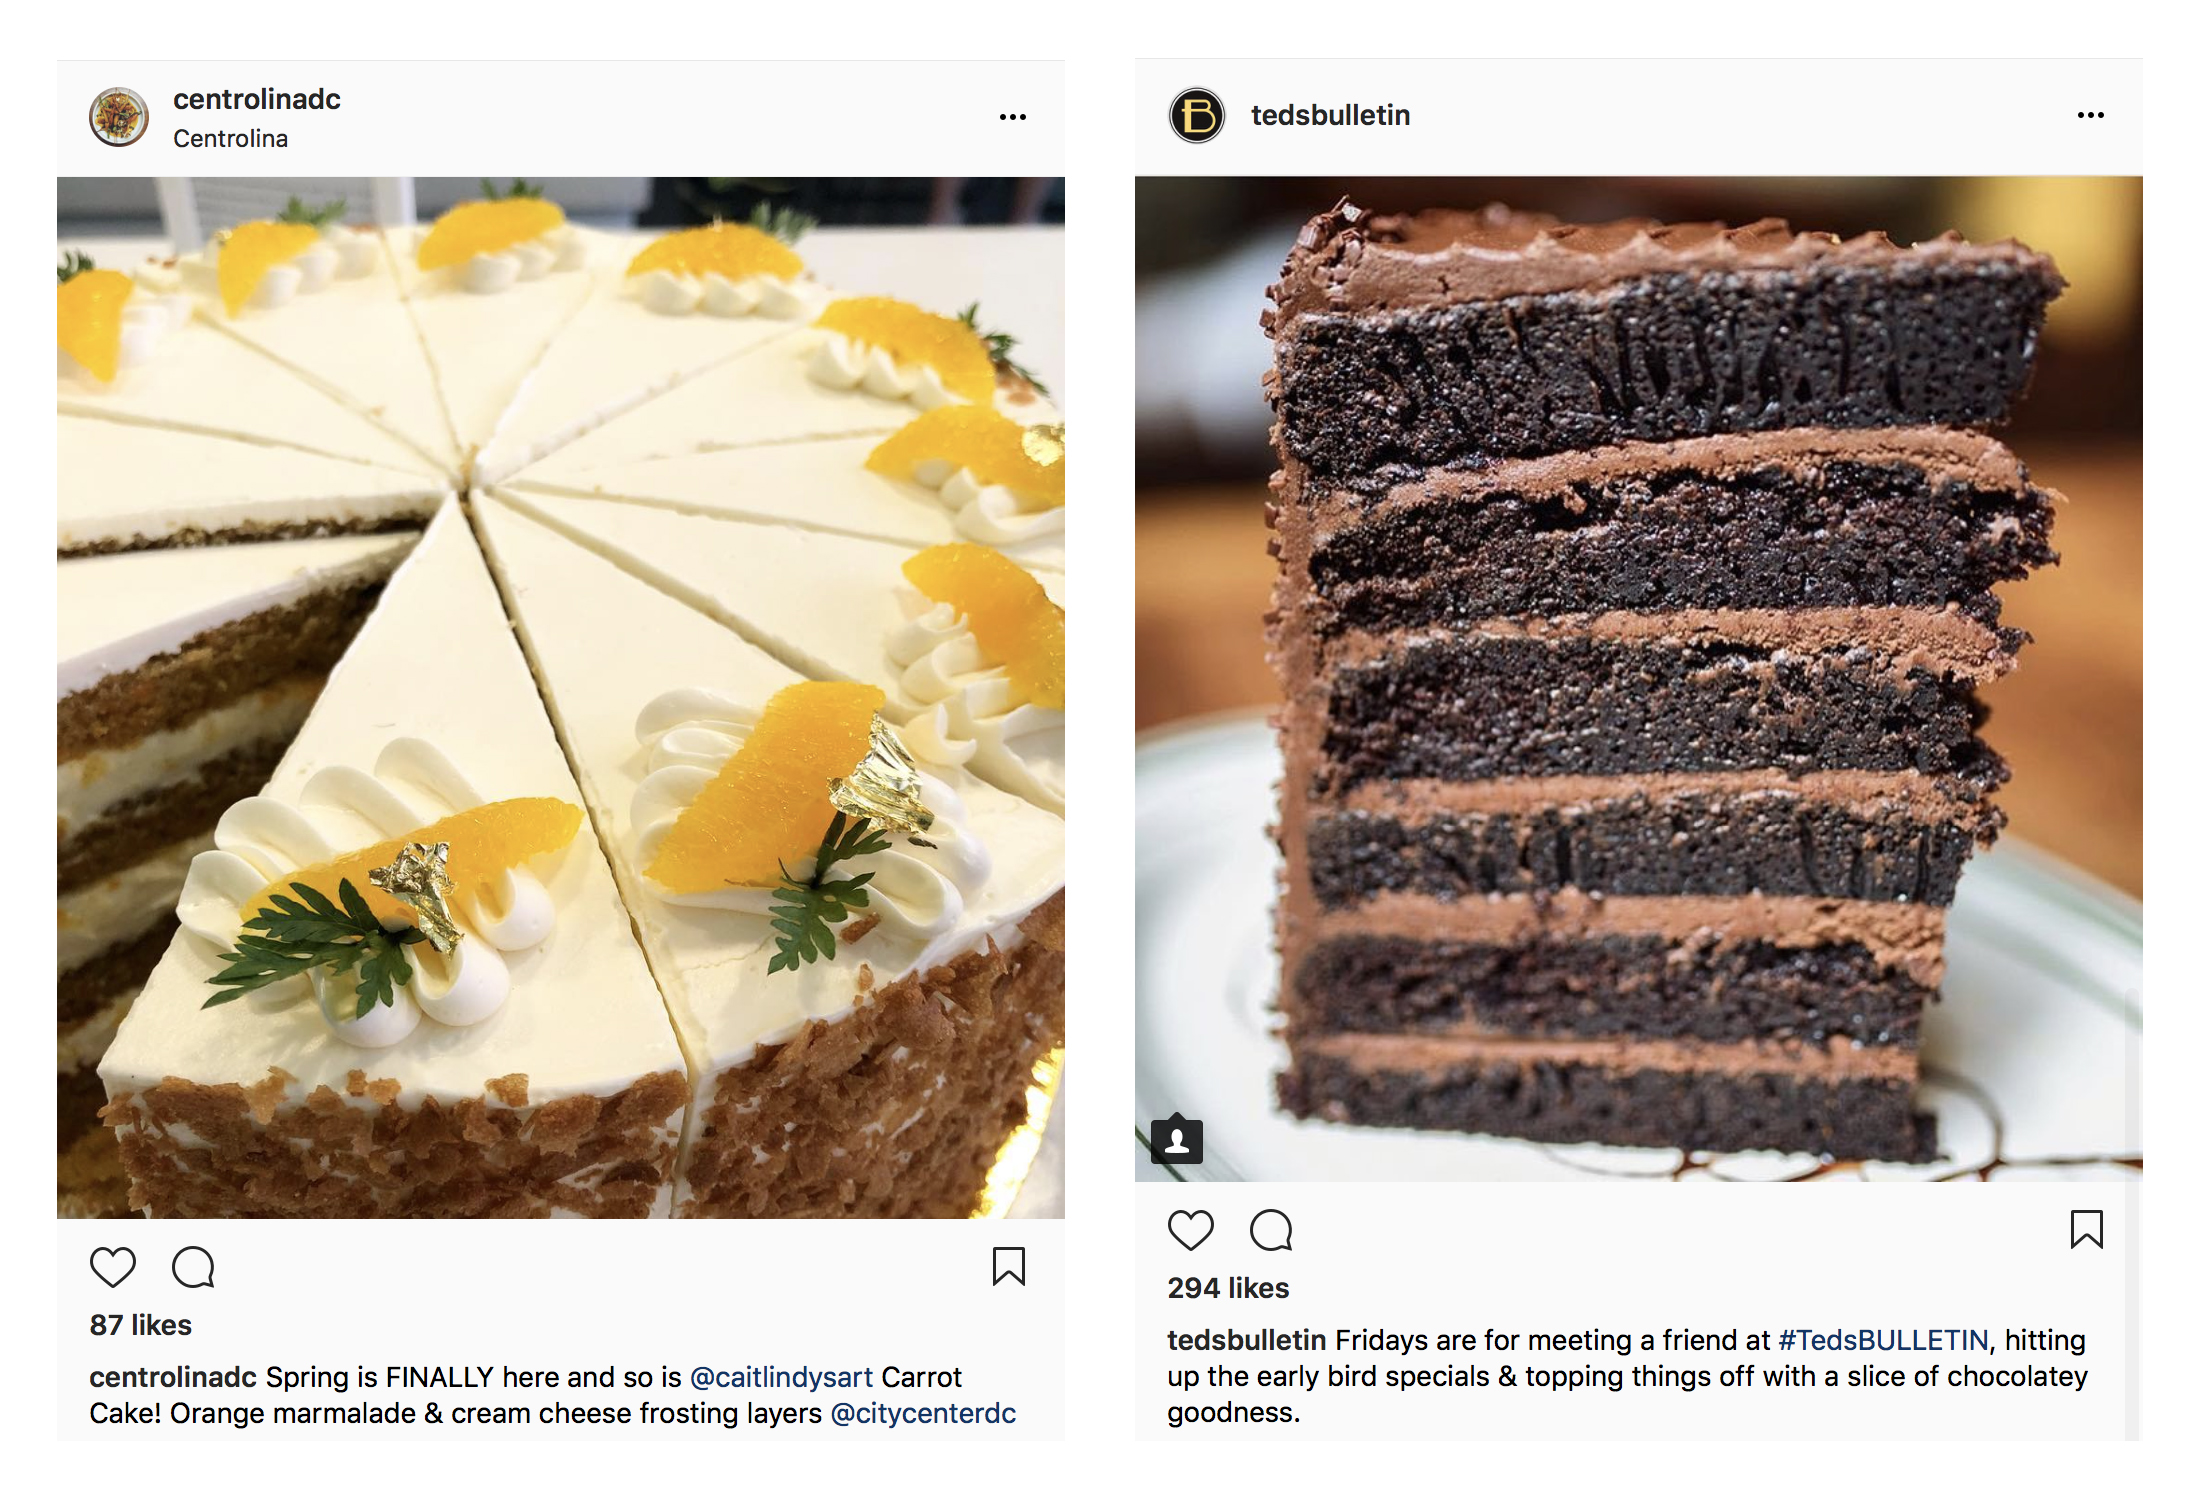 Huge cake slices on Paul's instagram feed